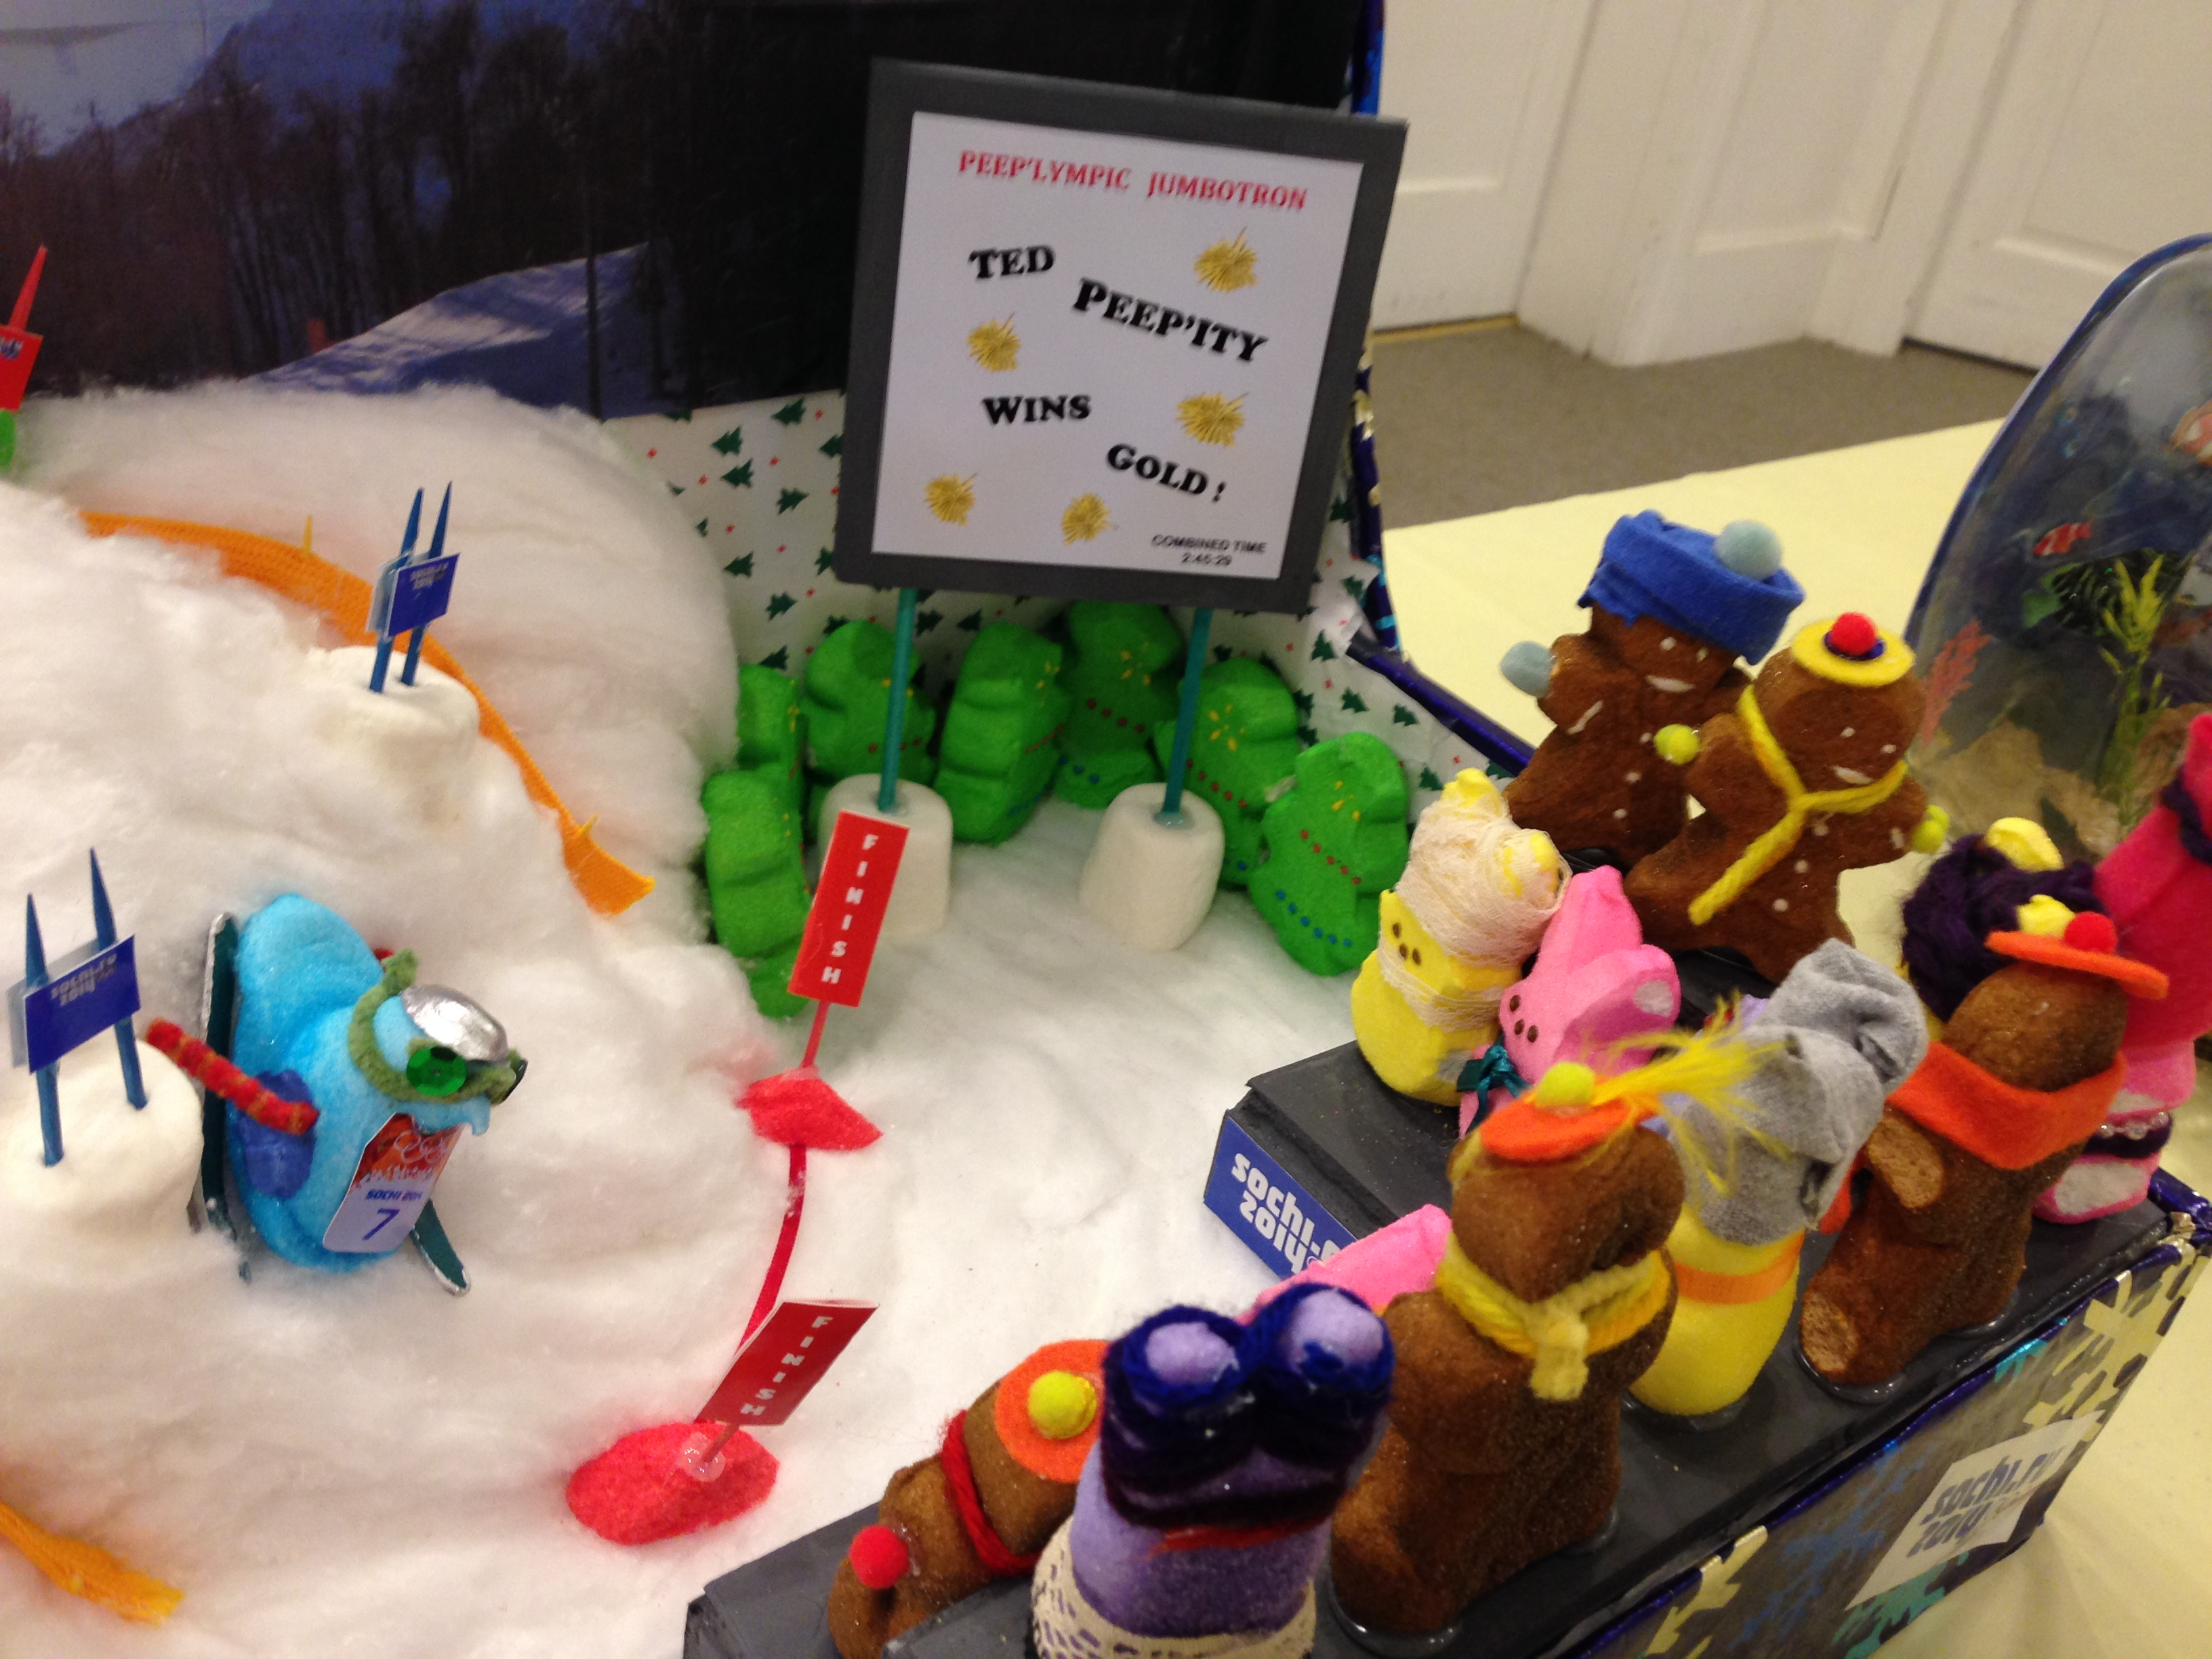 Library Arts Center 2014  Peeps Diorama Contest - Ted Peepity wins Olympic Gold